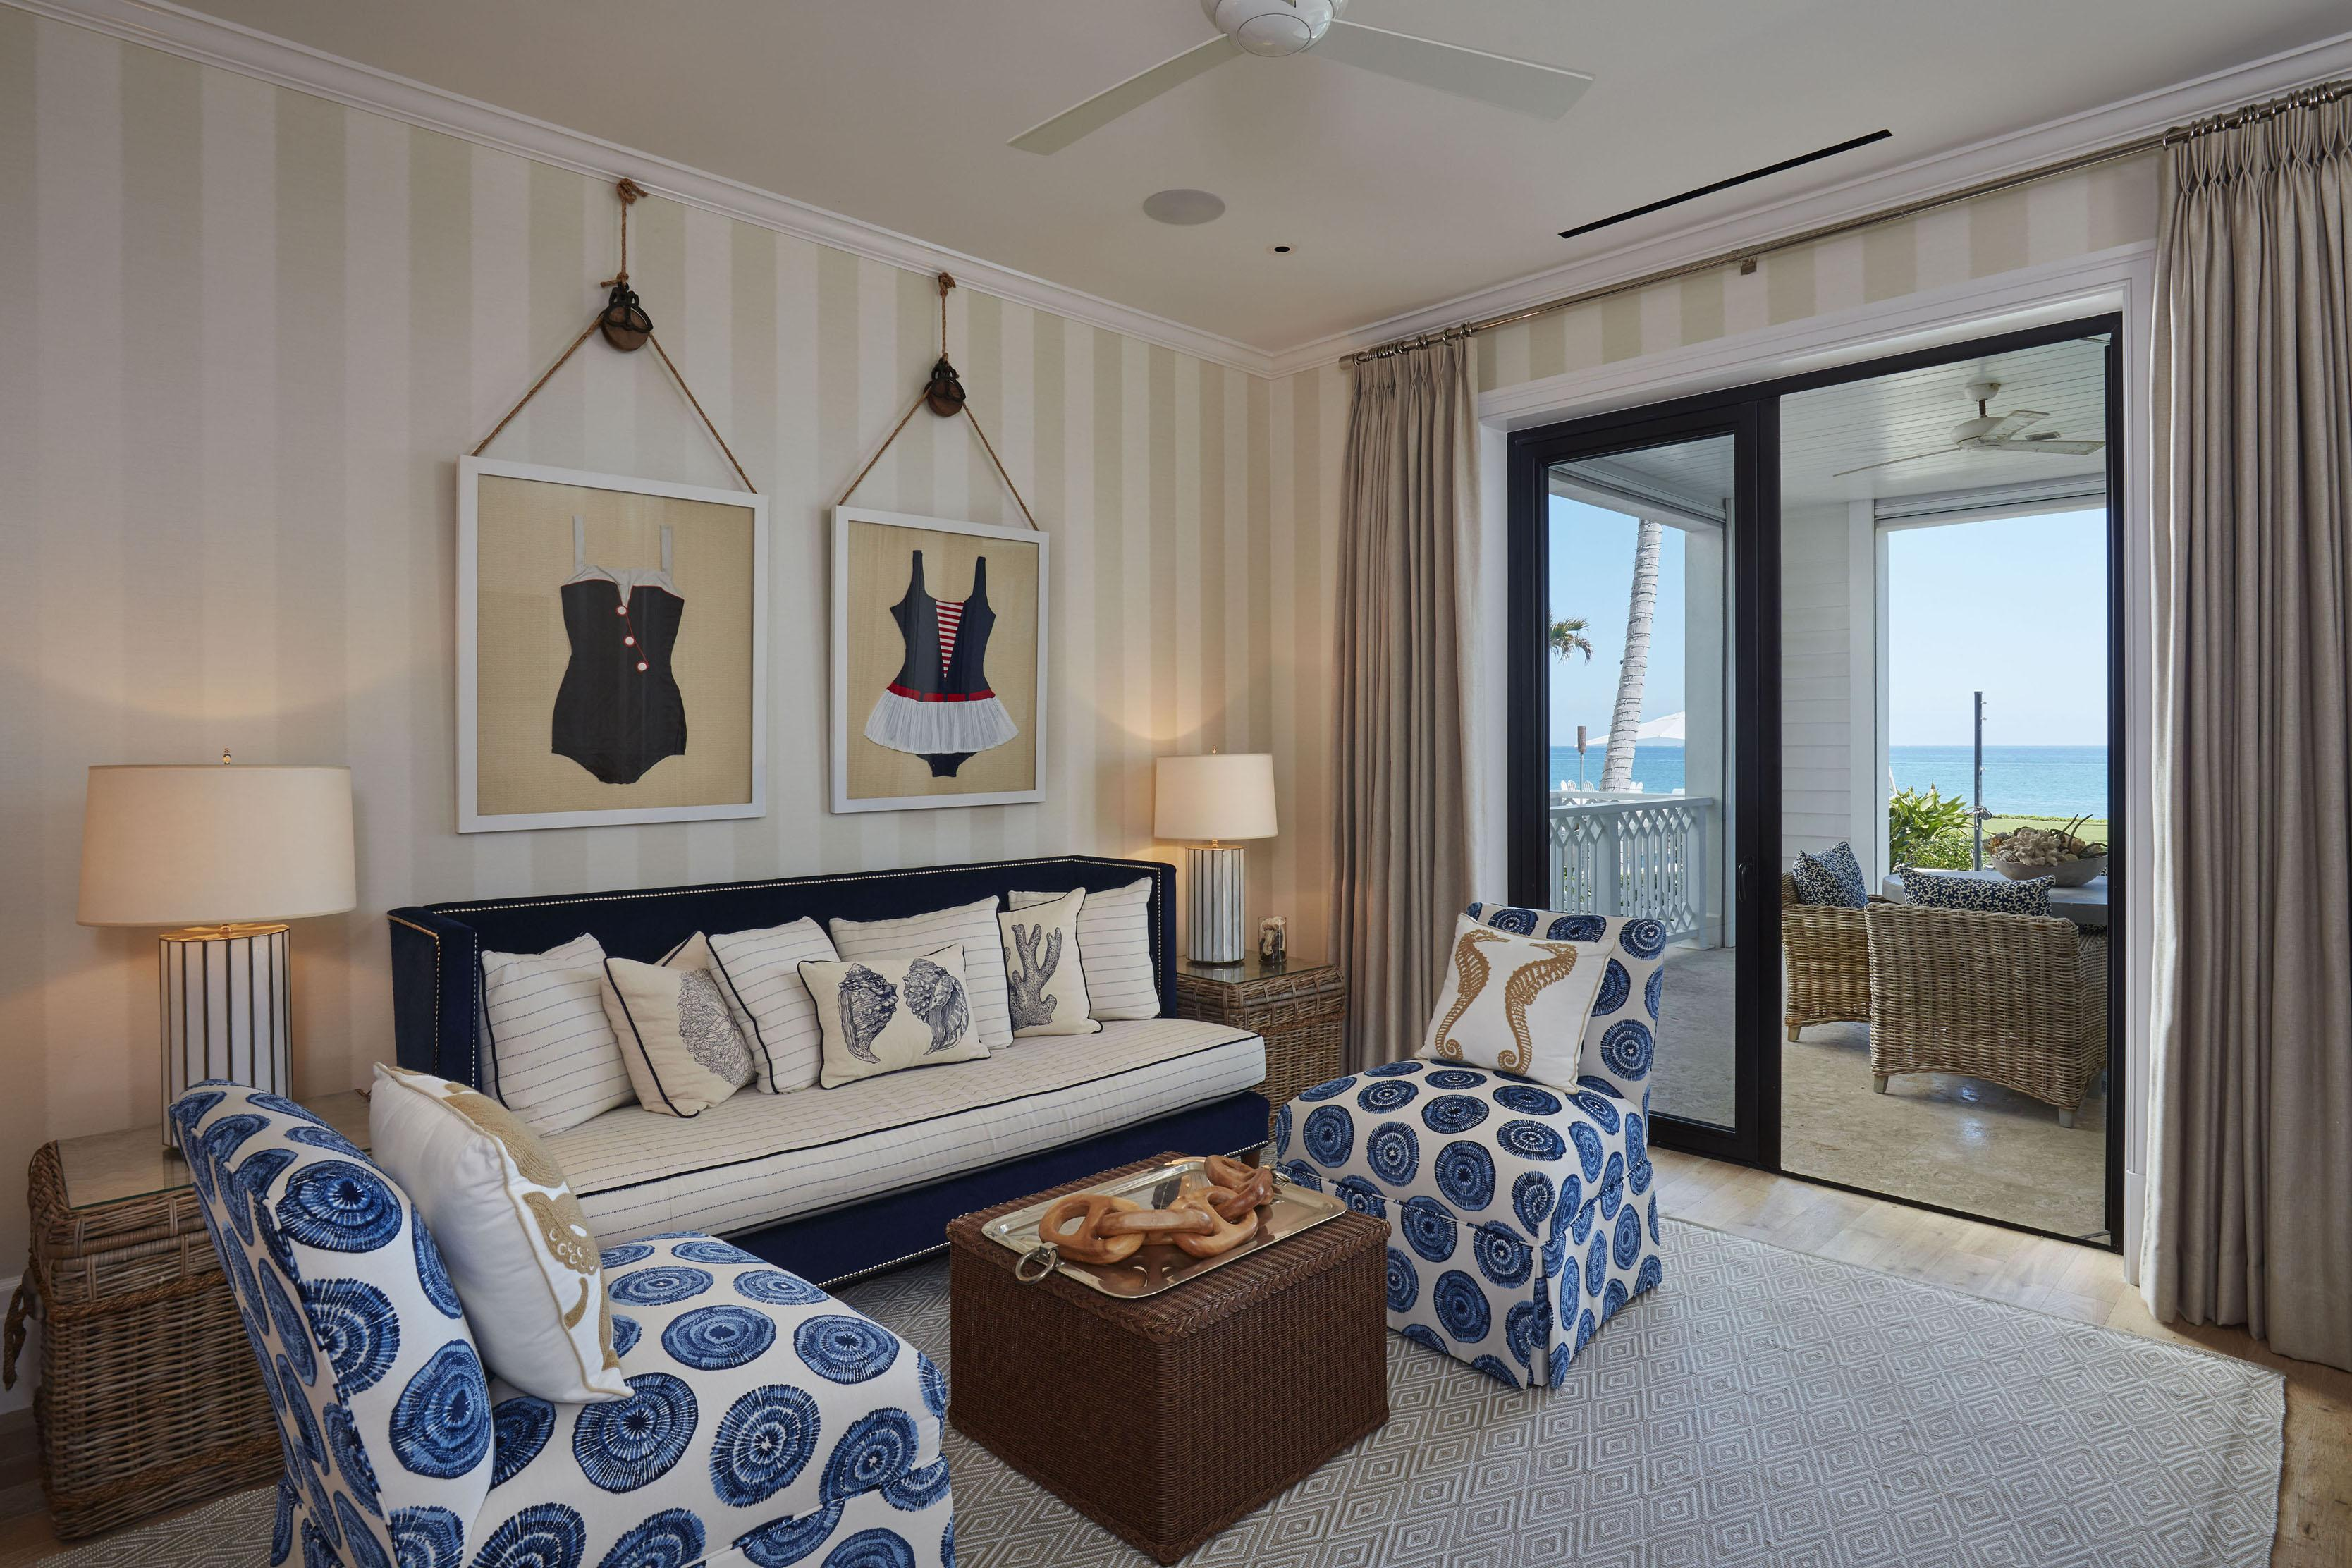 Each room invites you to relax with stunning views of the ocean